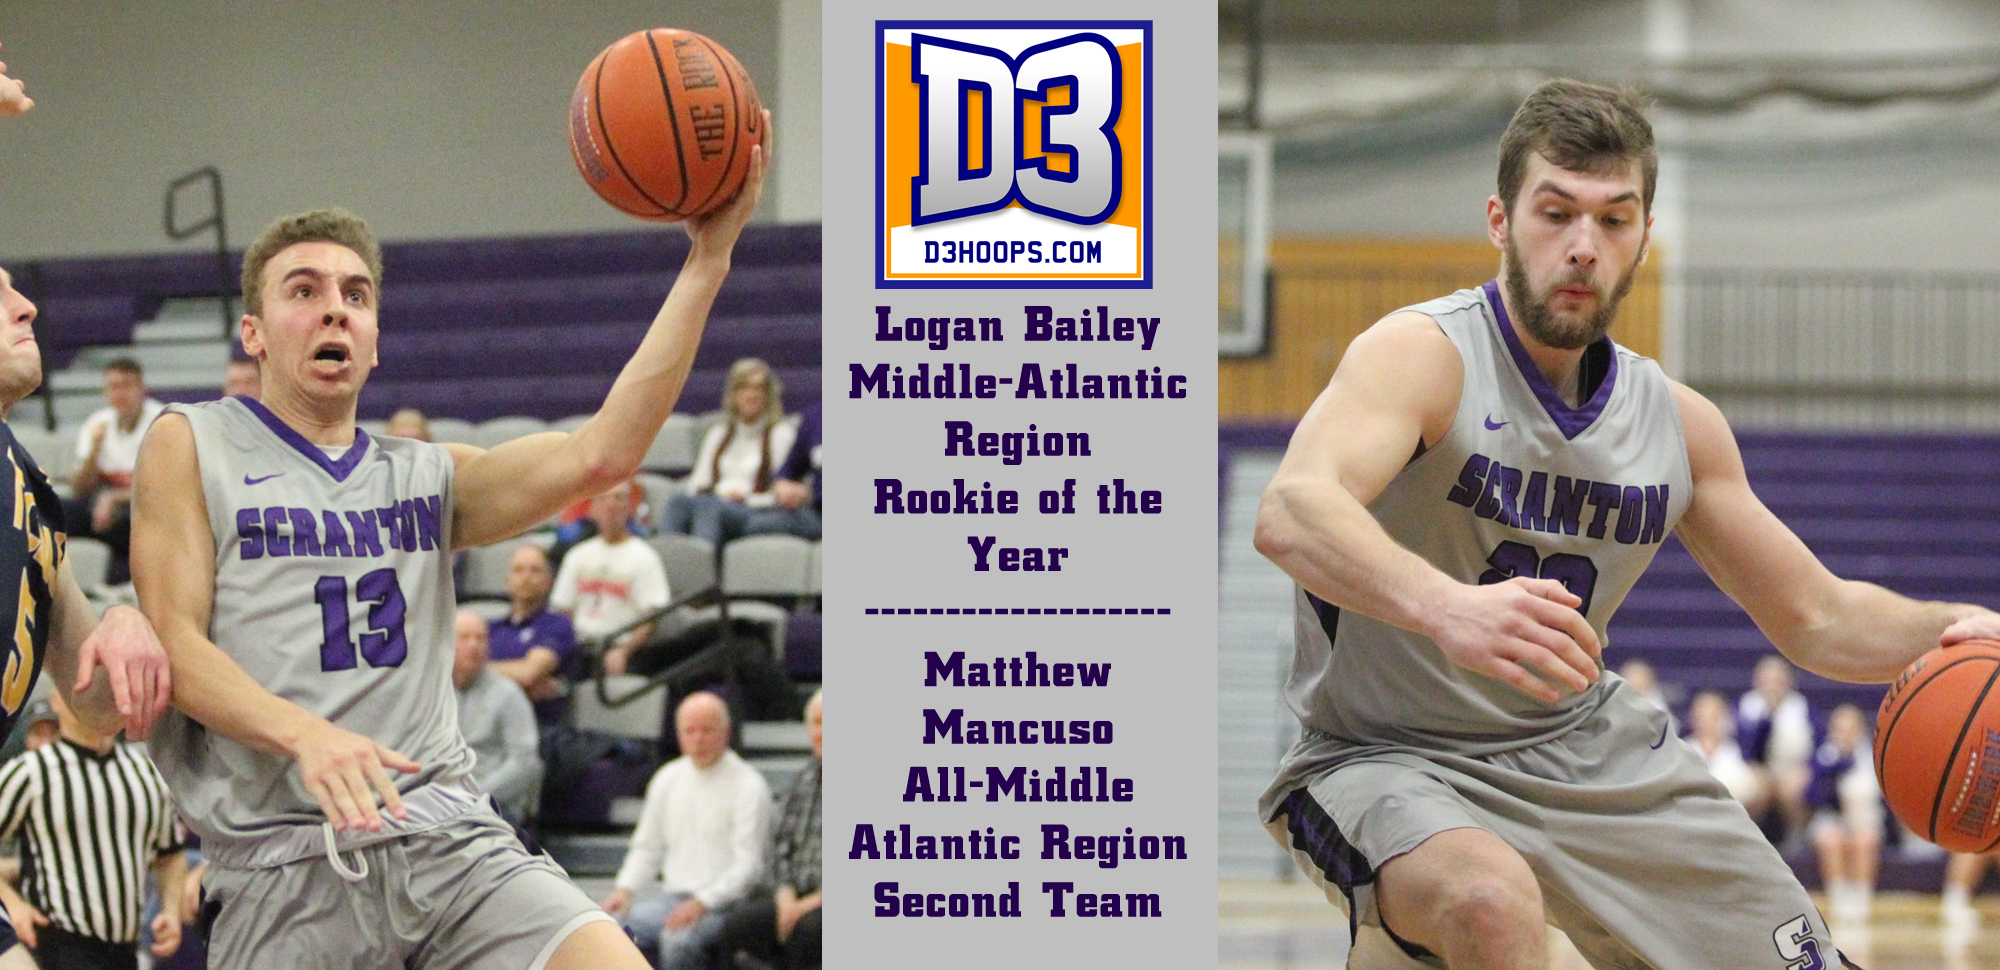 Sophomore Logan Bailey and junior Matthew Mancuso were both honored by D3hoops.com on Tuesday.